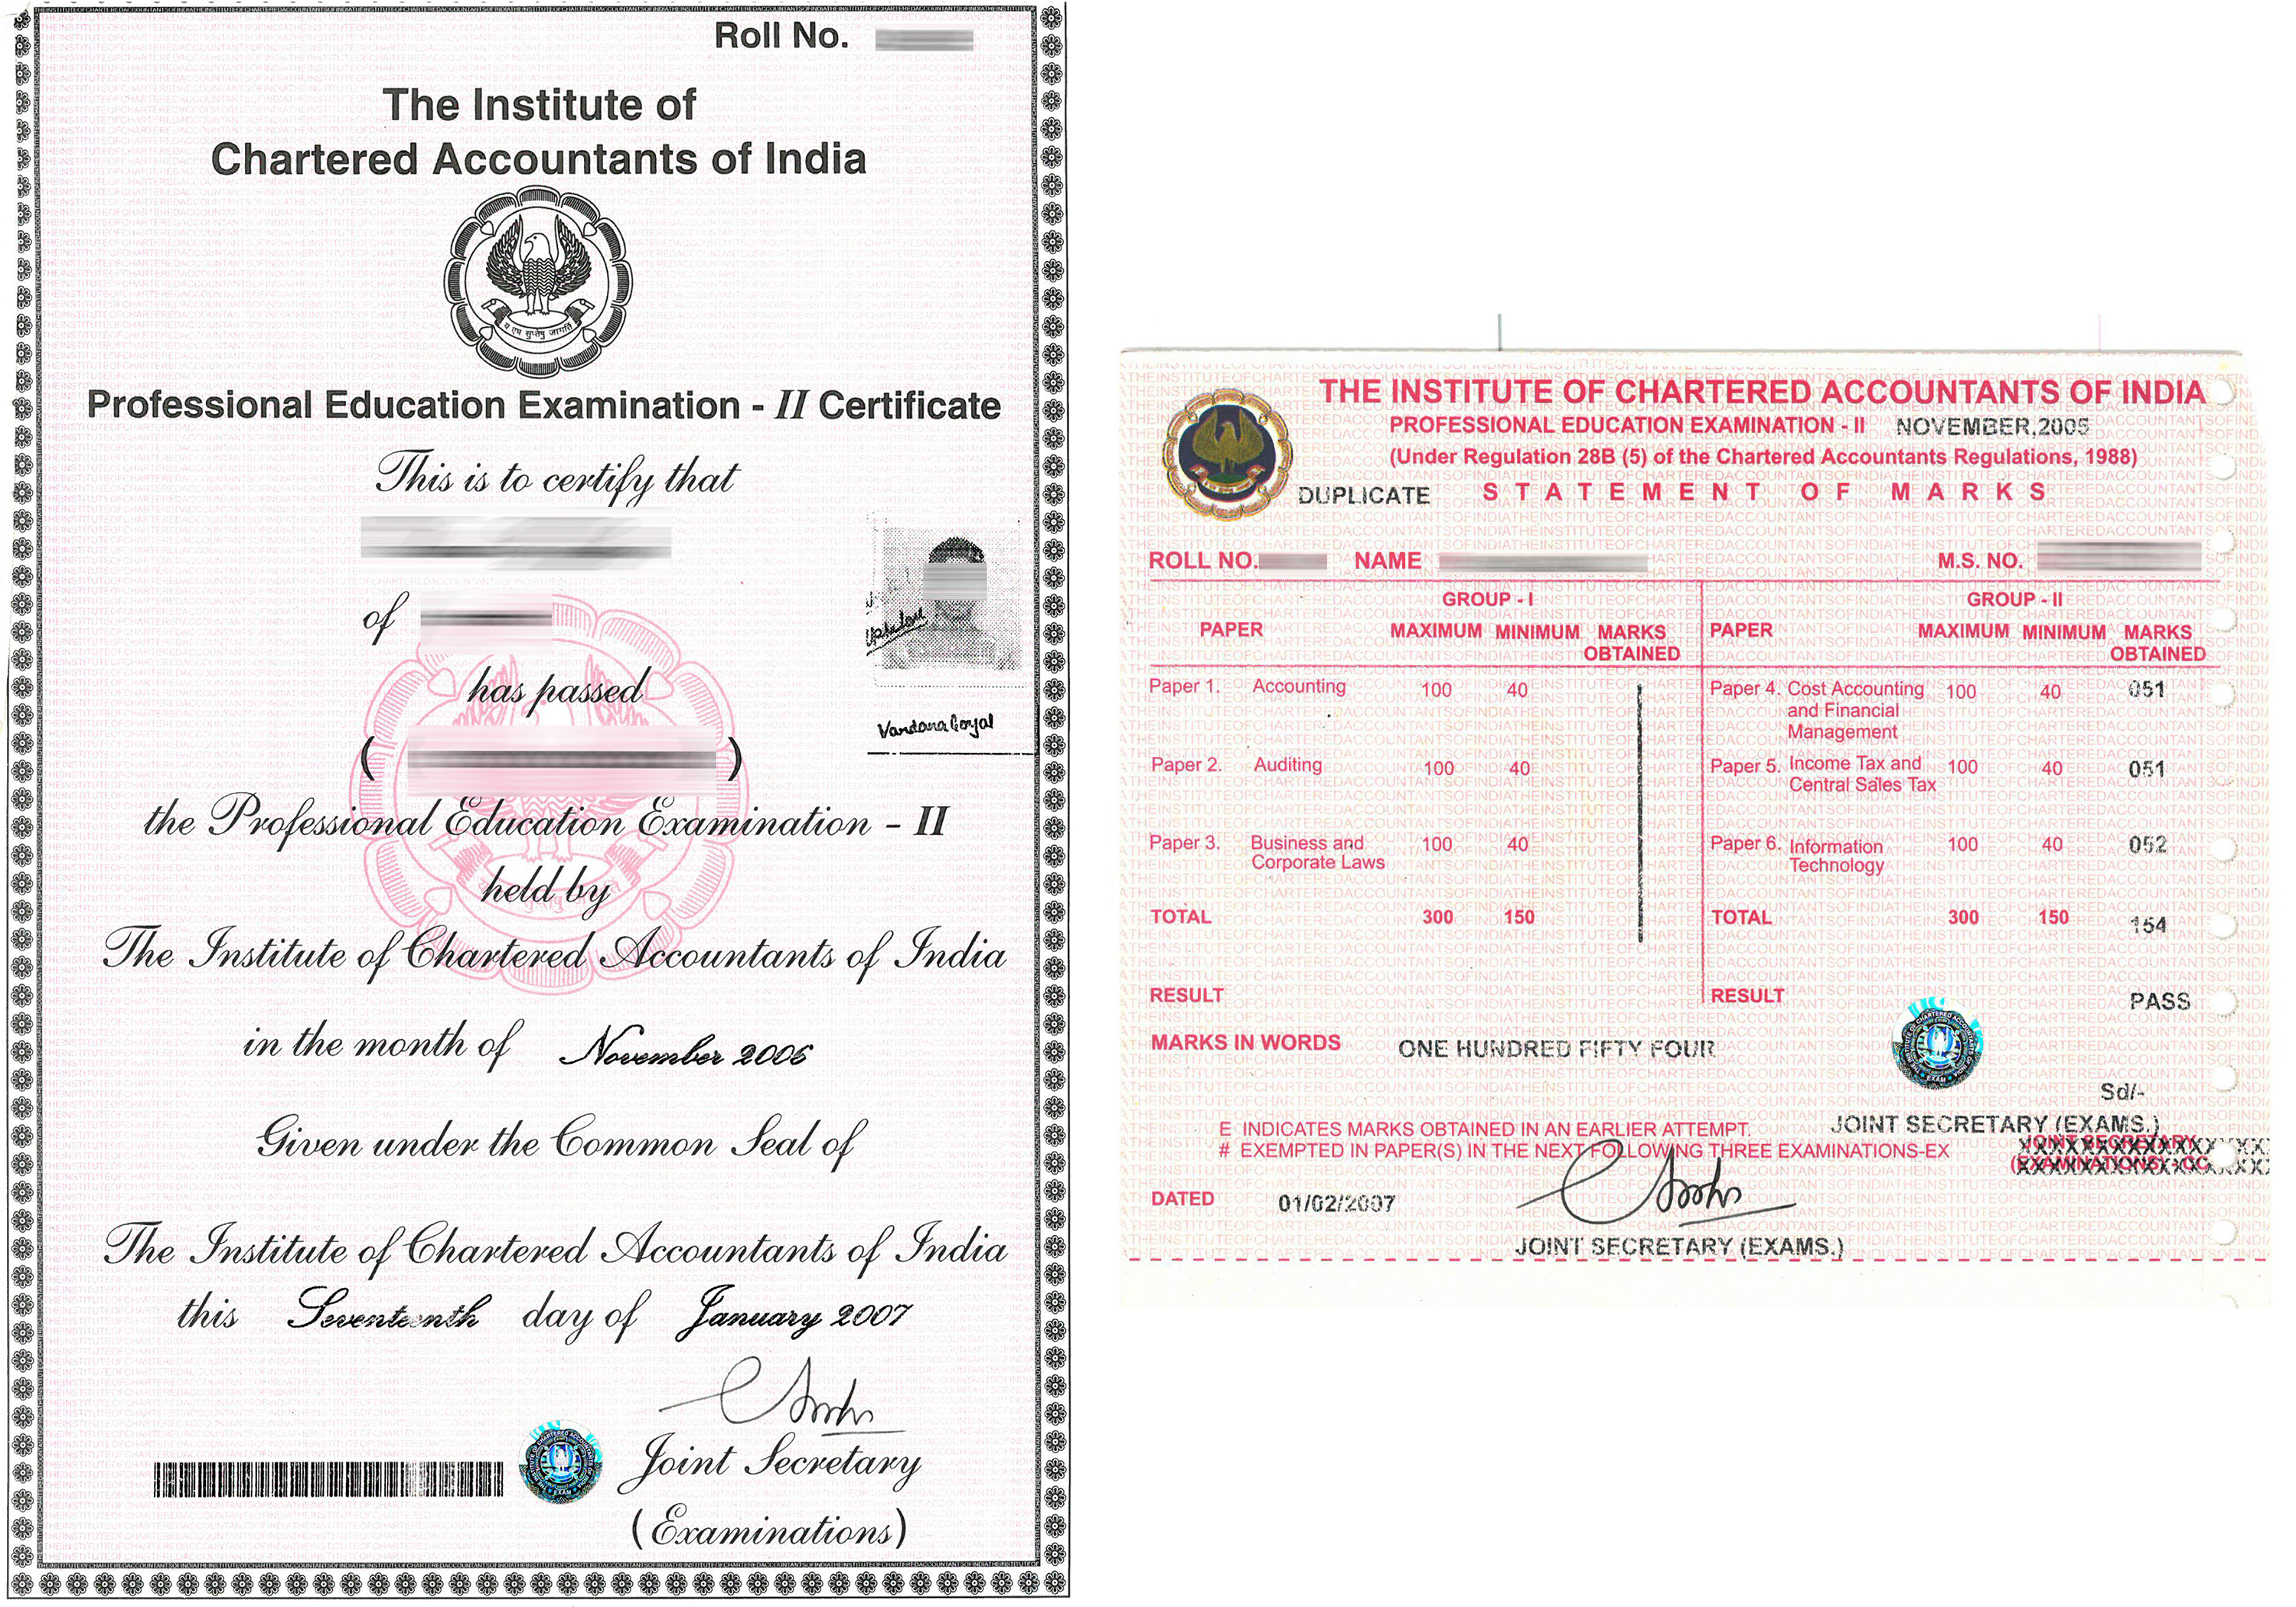 A sample of ICAI credentials